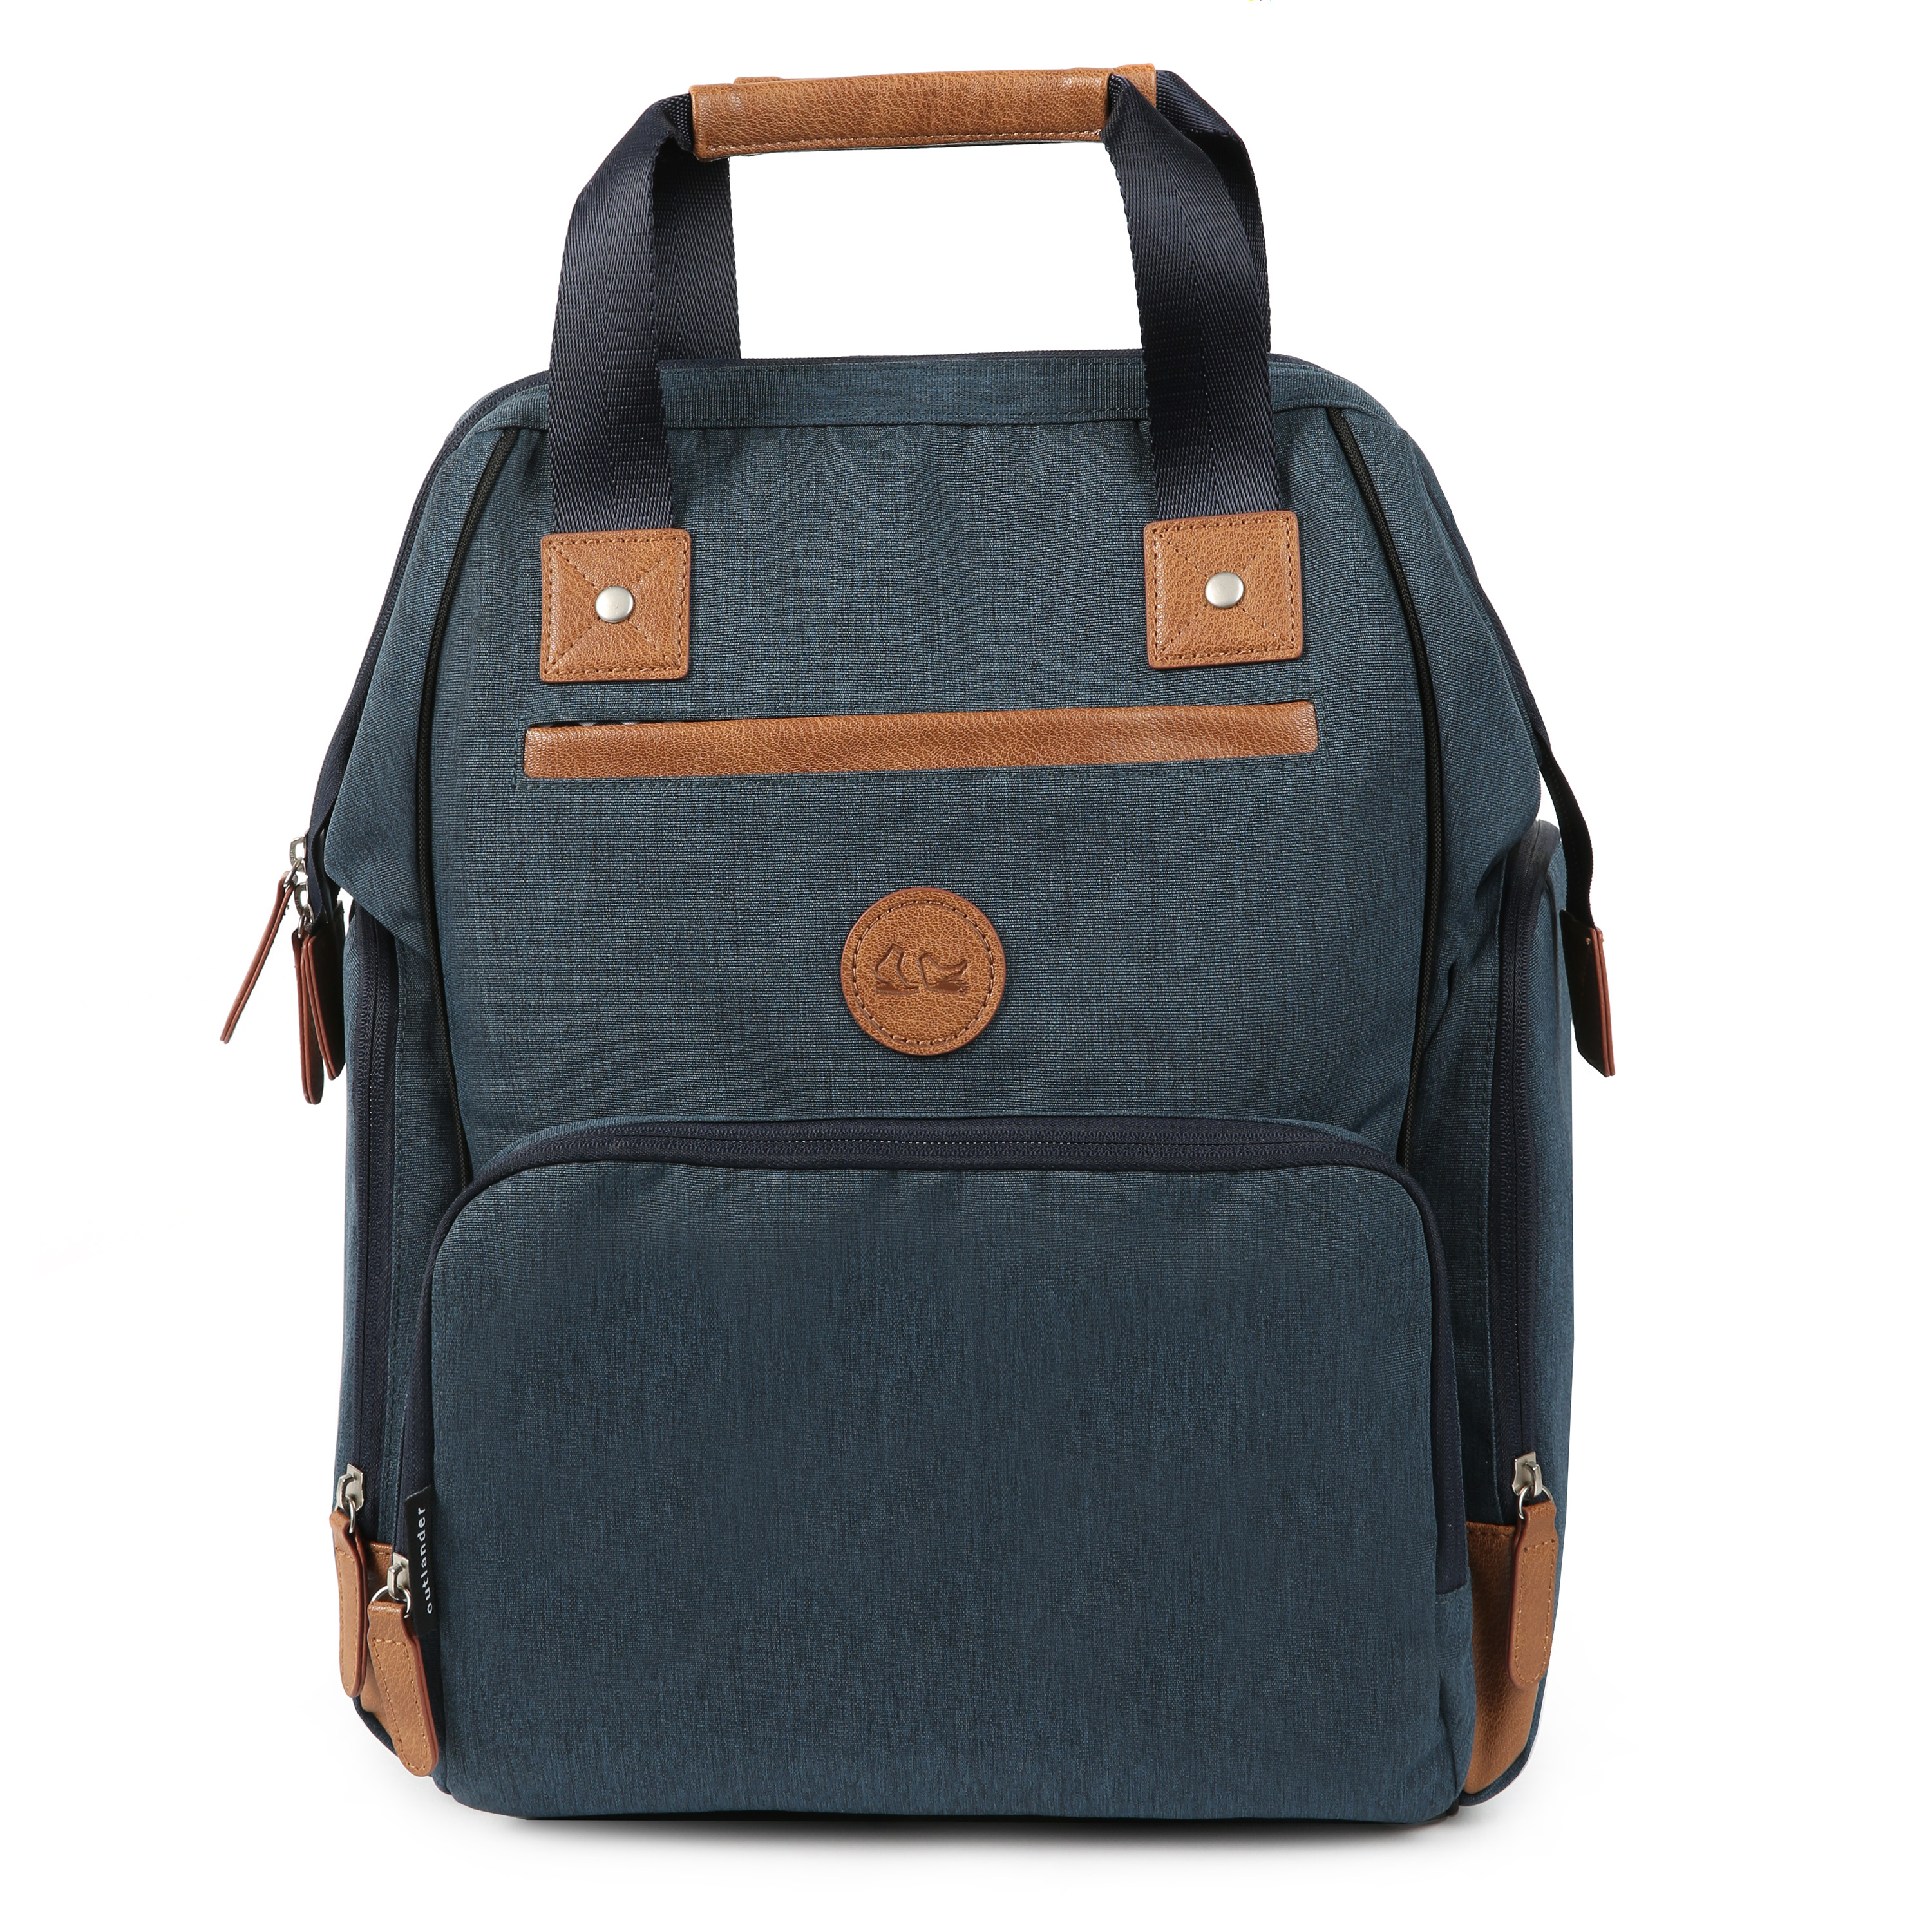 Backpack Bleu Marine  de Joie